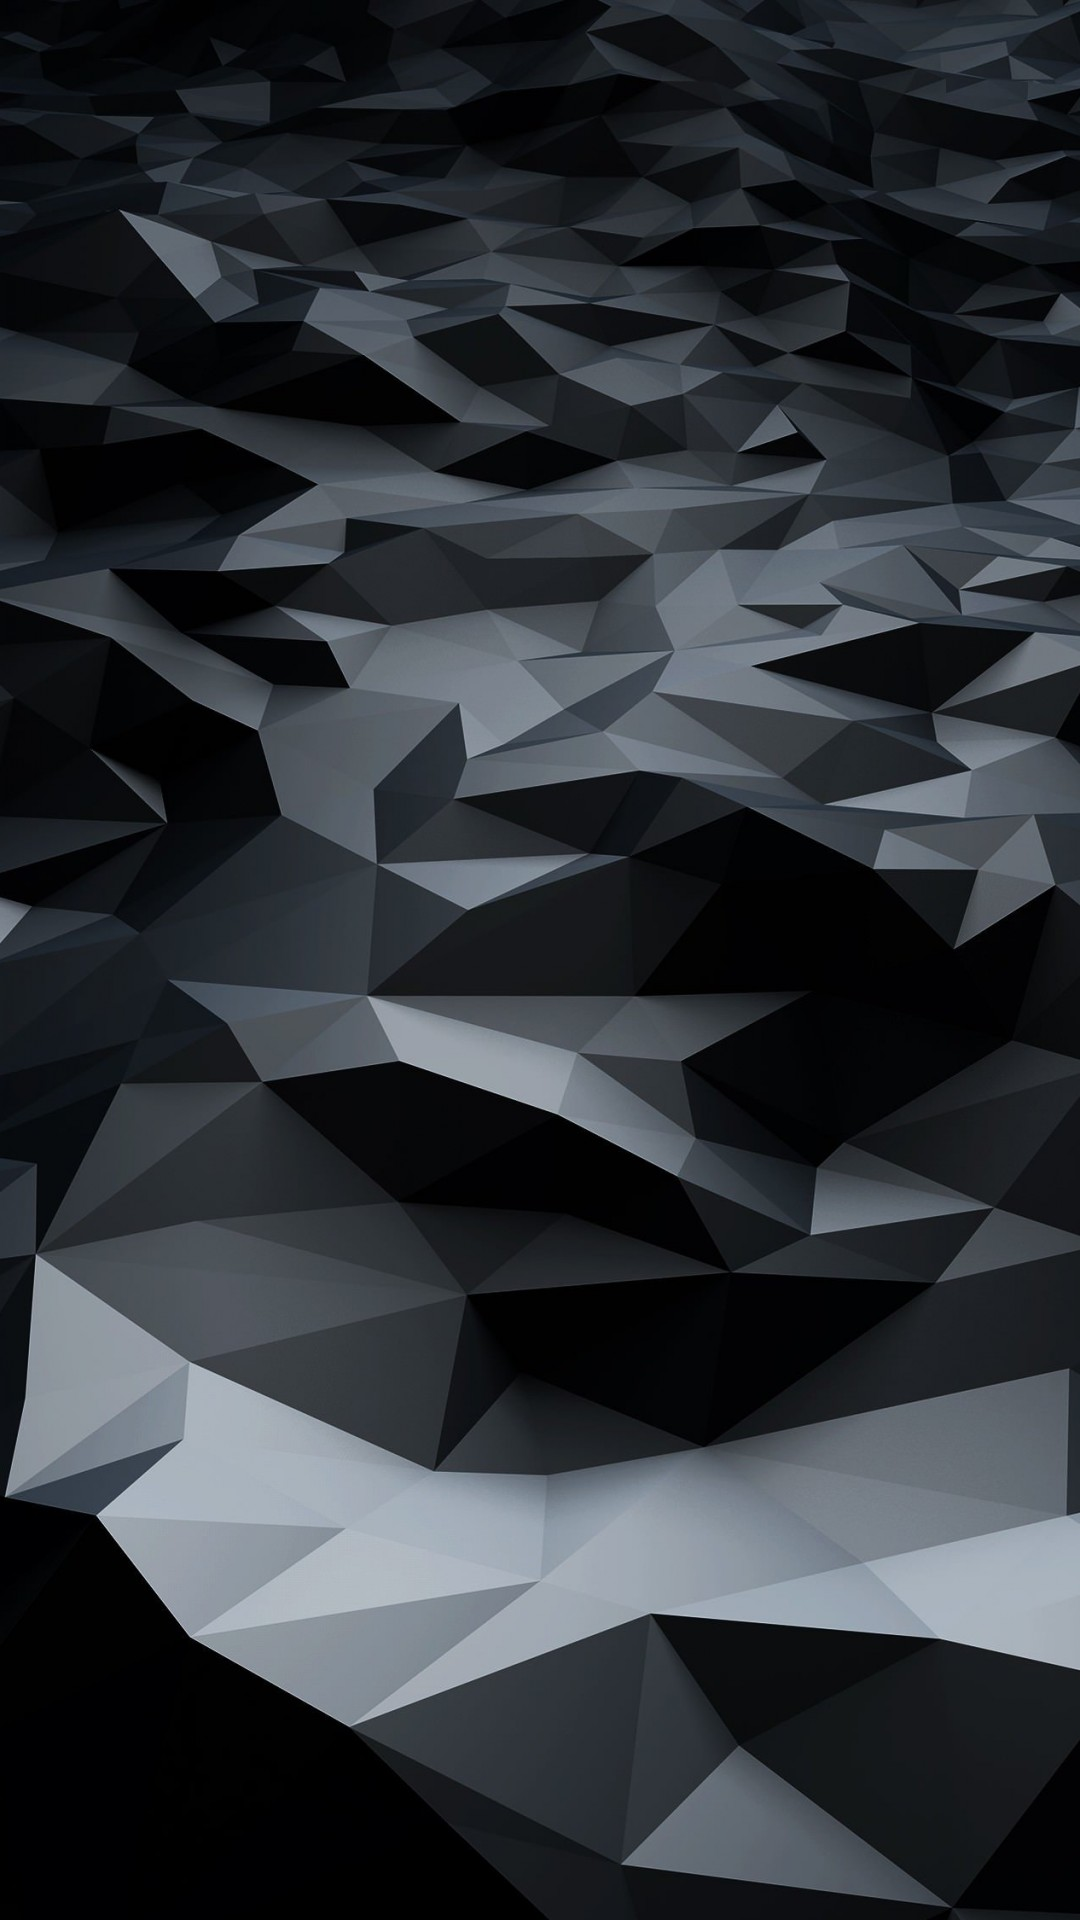 Abstract Black Low Poly Wallpaper for SAMSUNG Galaxy S5